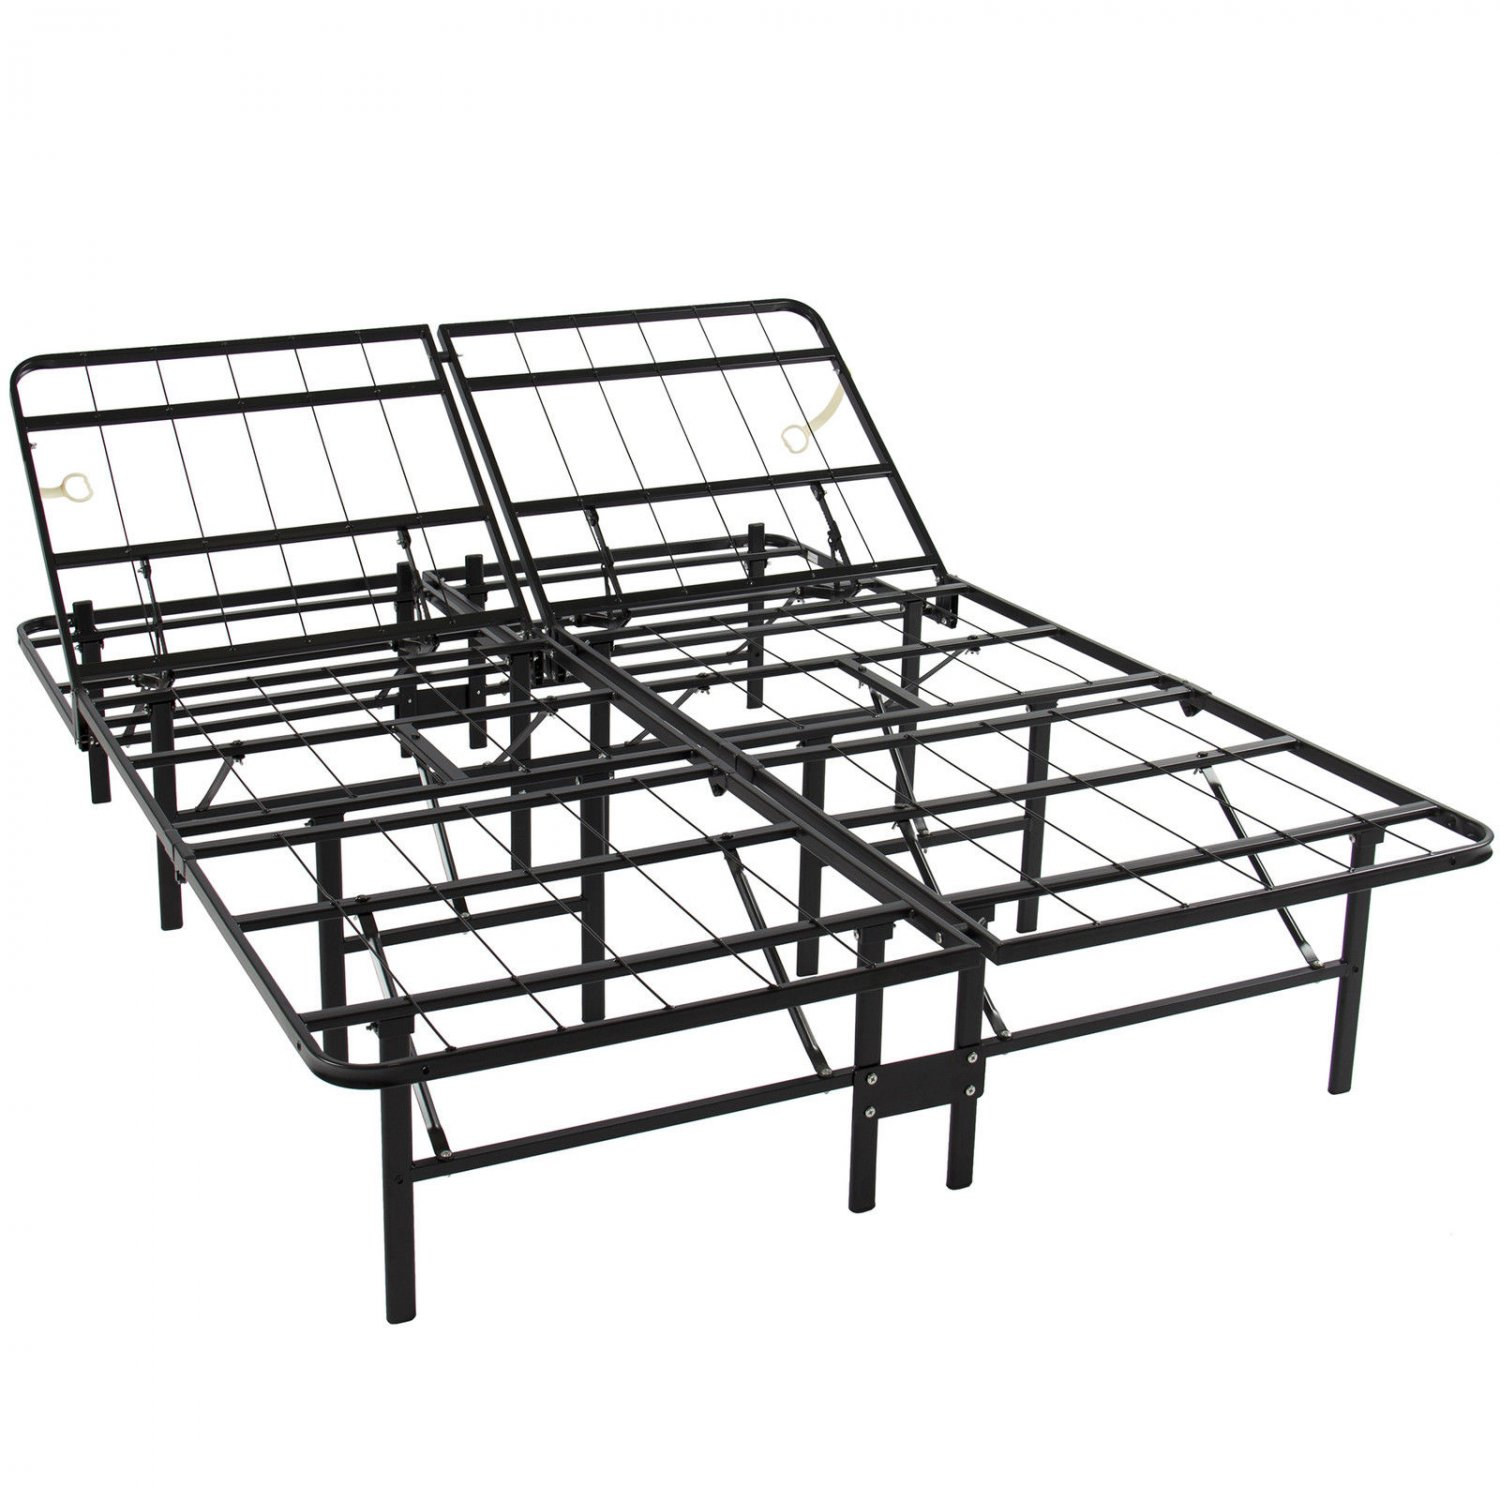 Adjustable queen metal bed frame : Adjustable platform metal bed frame no box spring mattress